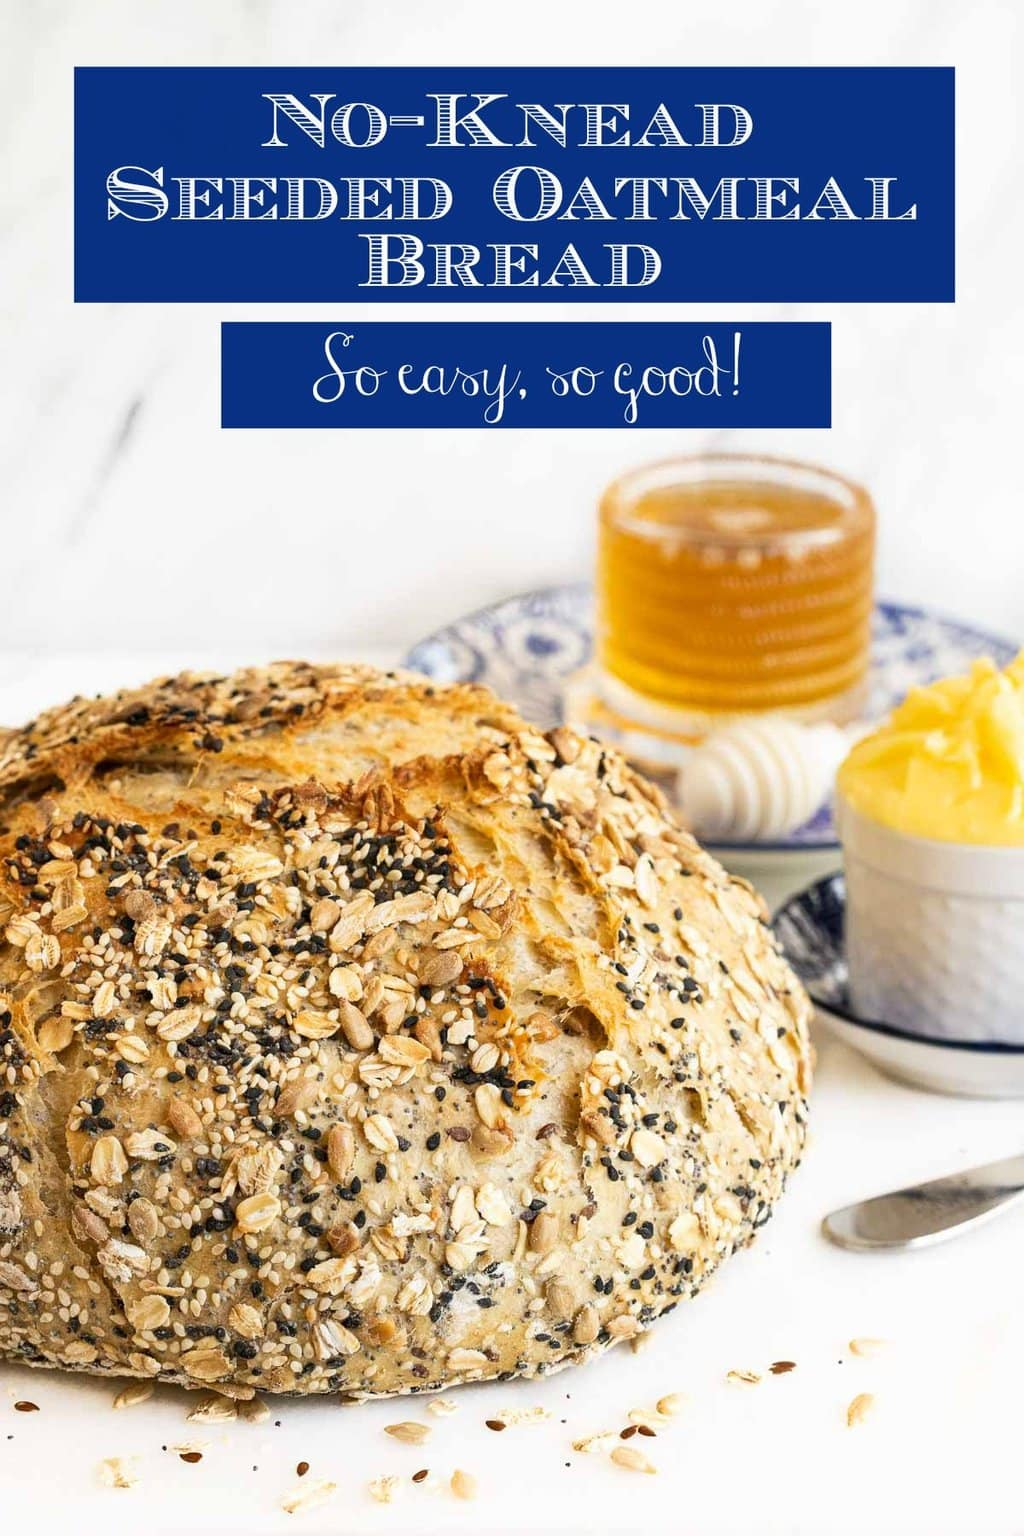 No-Knead Seeded Oatmeal Bread